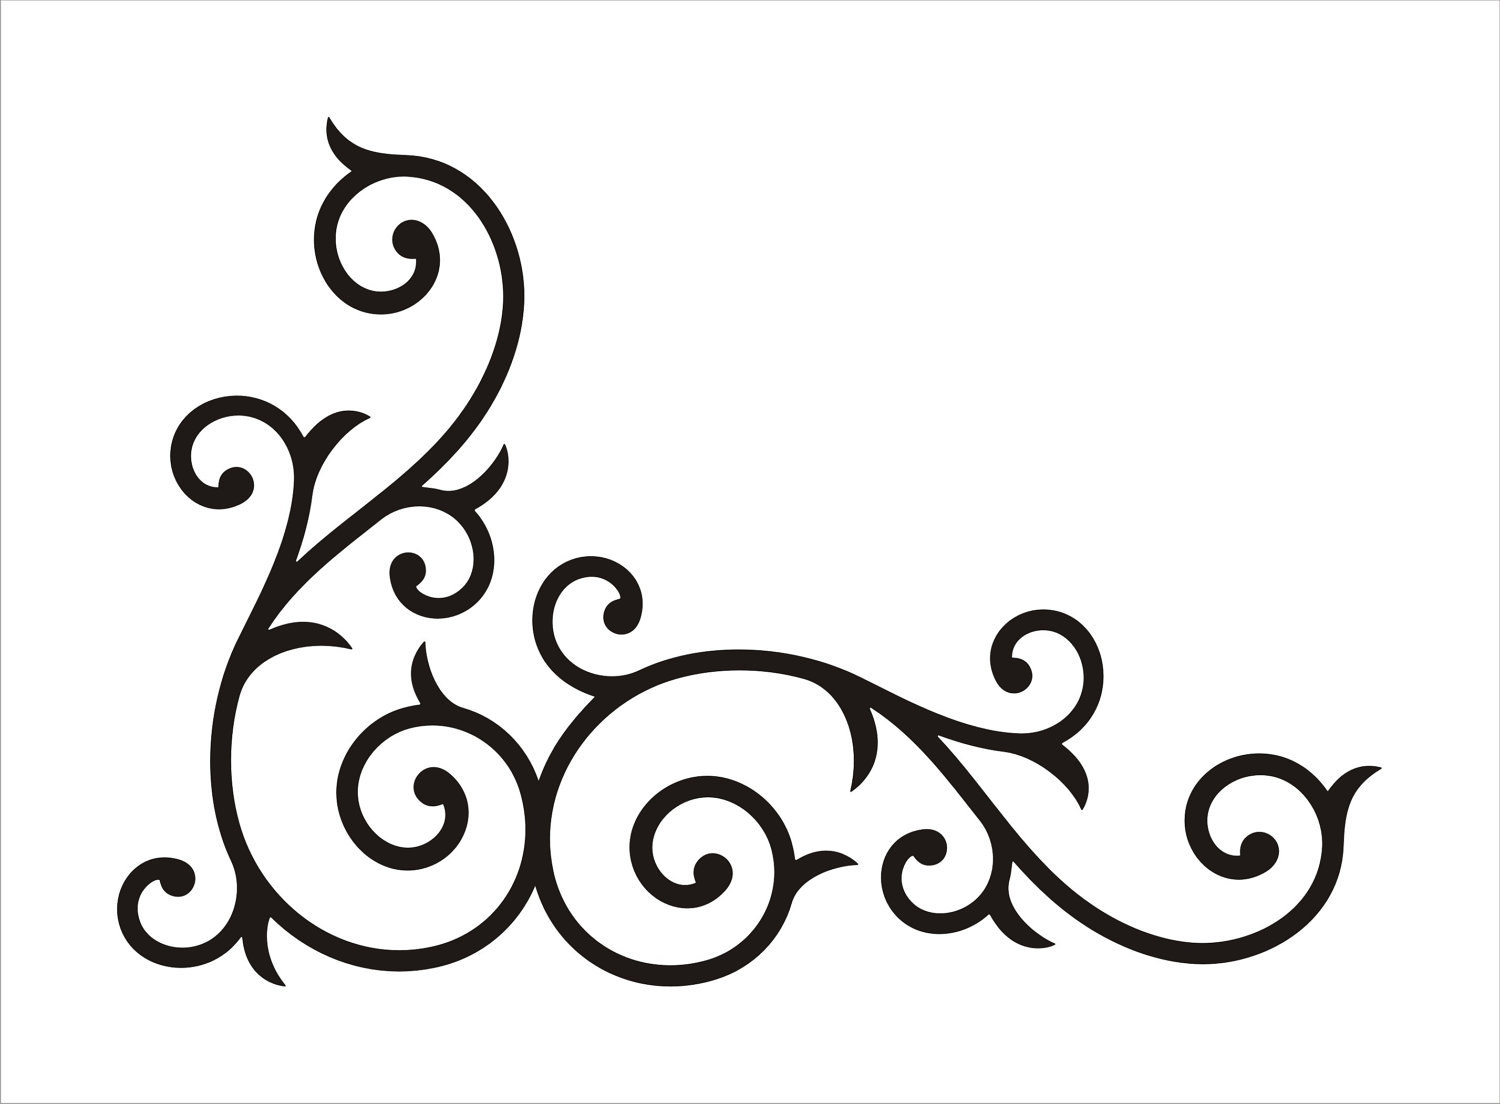 Simple Swirl Designs Stencils : Simple swirls black clipart panda free images